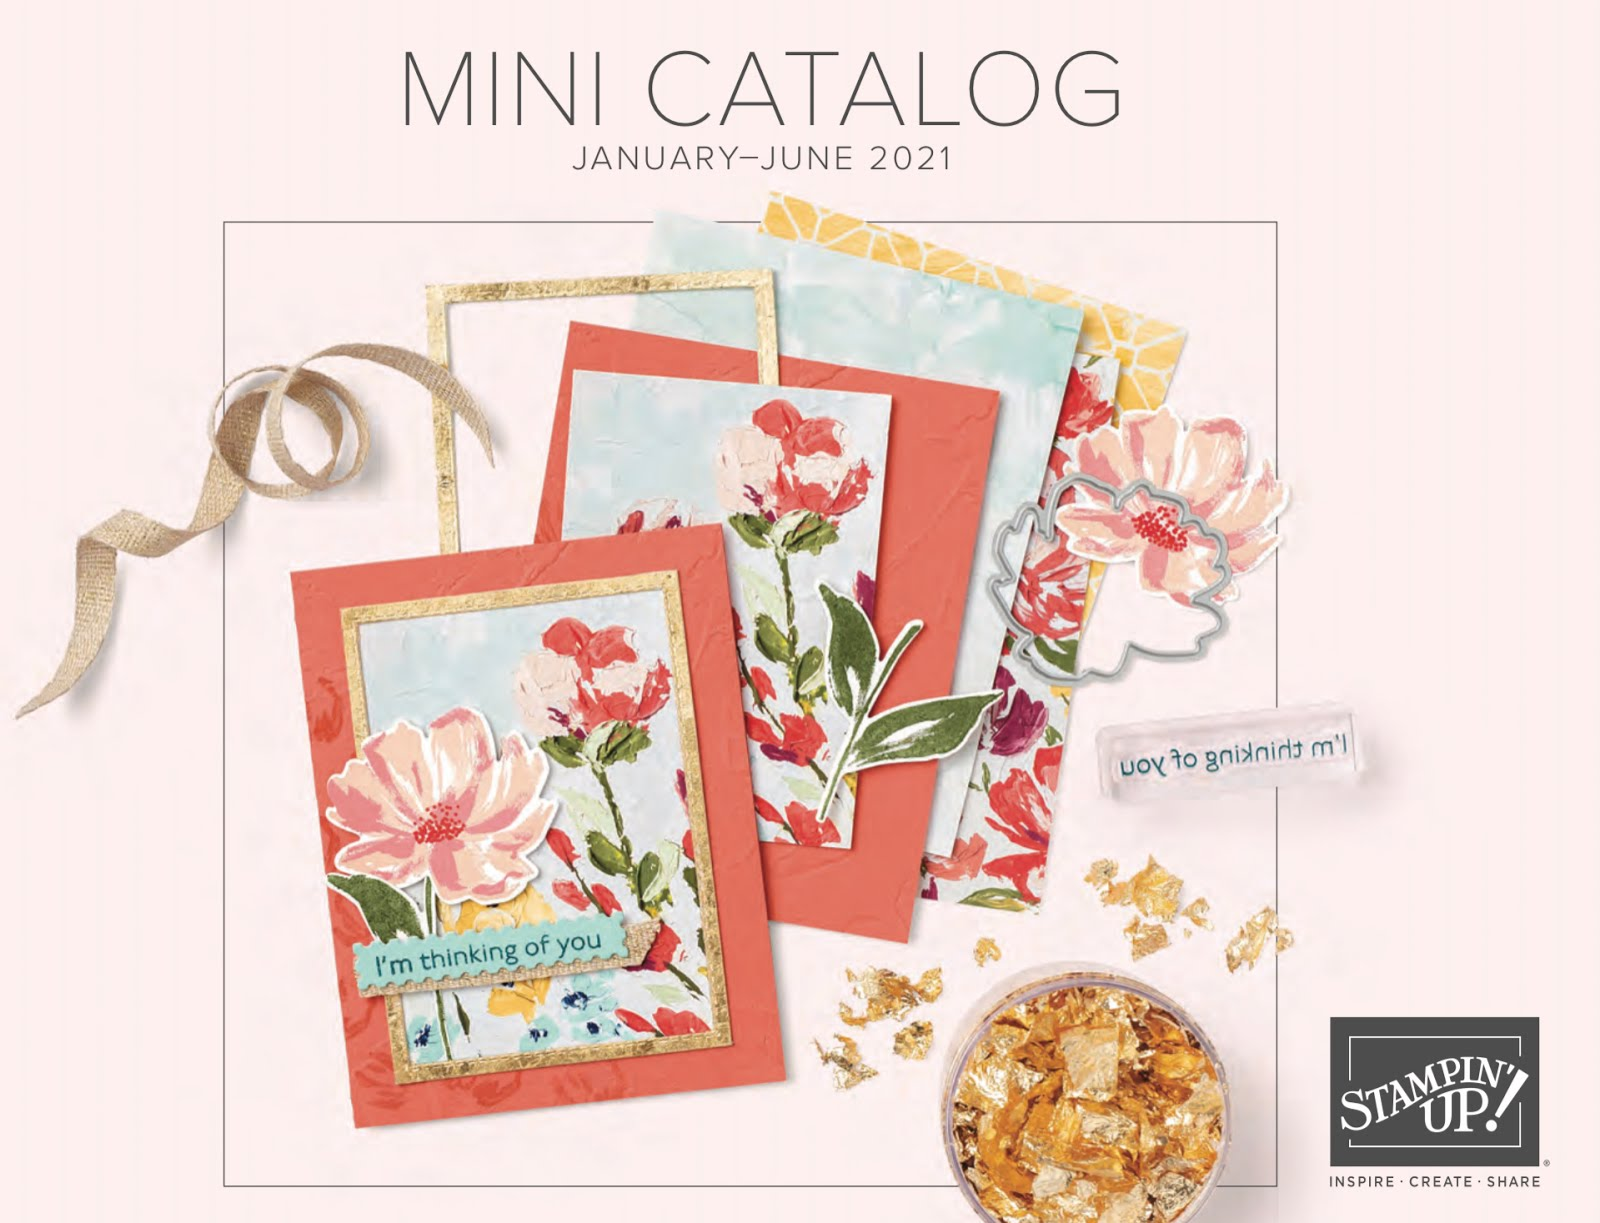 The new January - June mini catalog